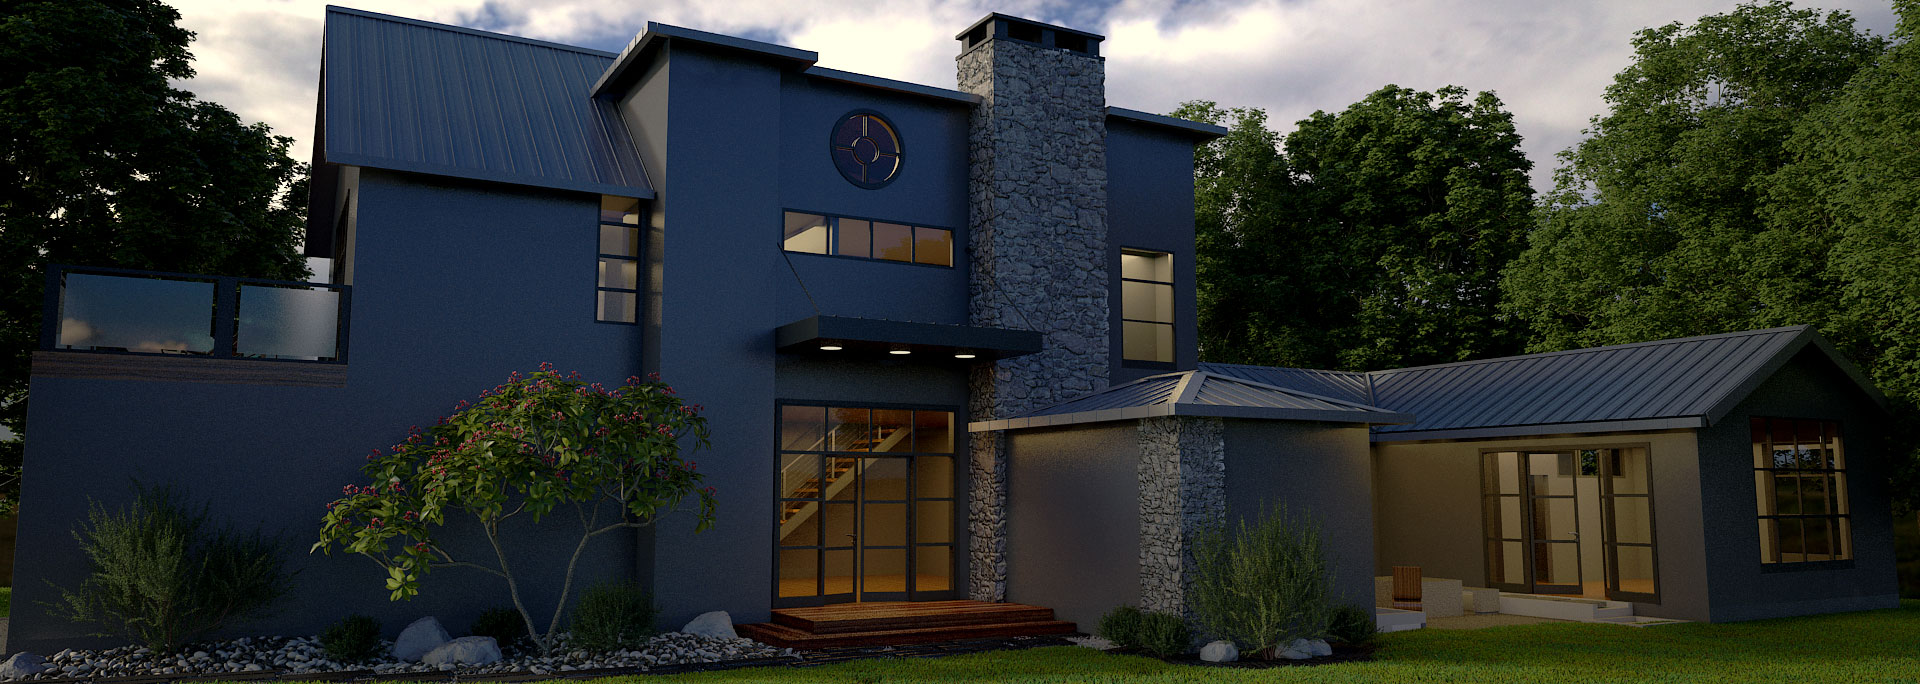 Organic modern home with ipe wood deck ceiling and mixed stucco and stone exterior